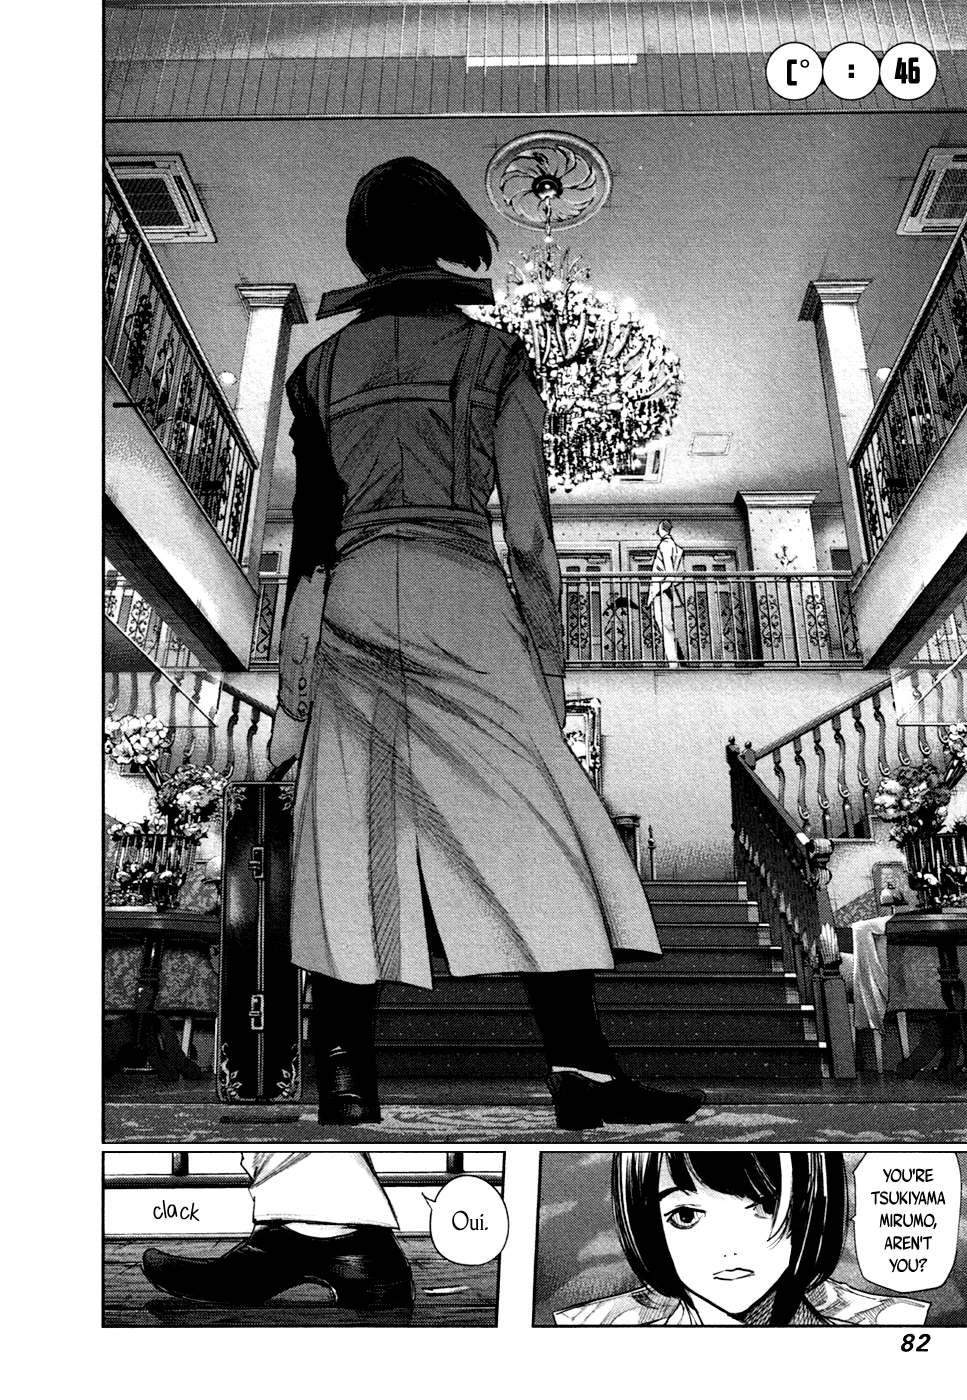 Tokyo Ghoulre Chapter 46  Online Free Manga Read Image 5